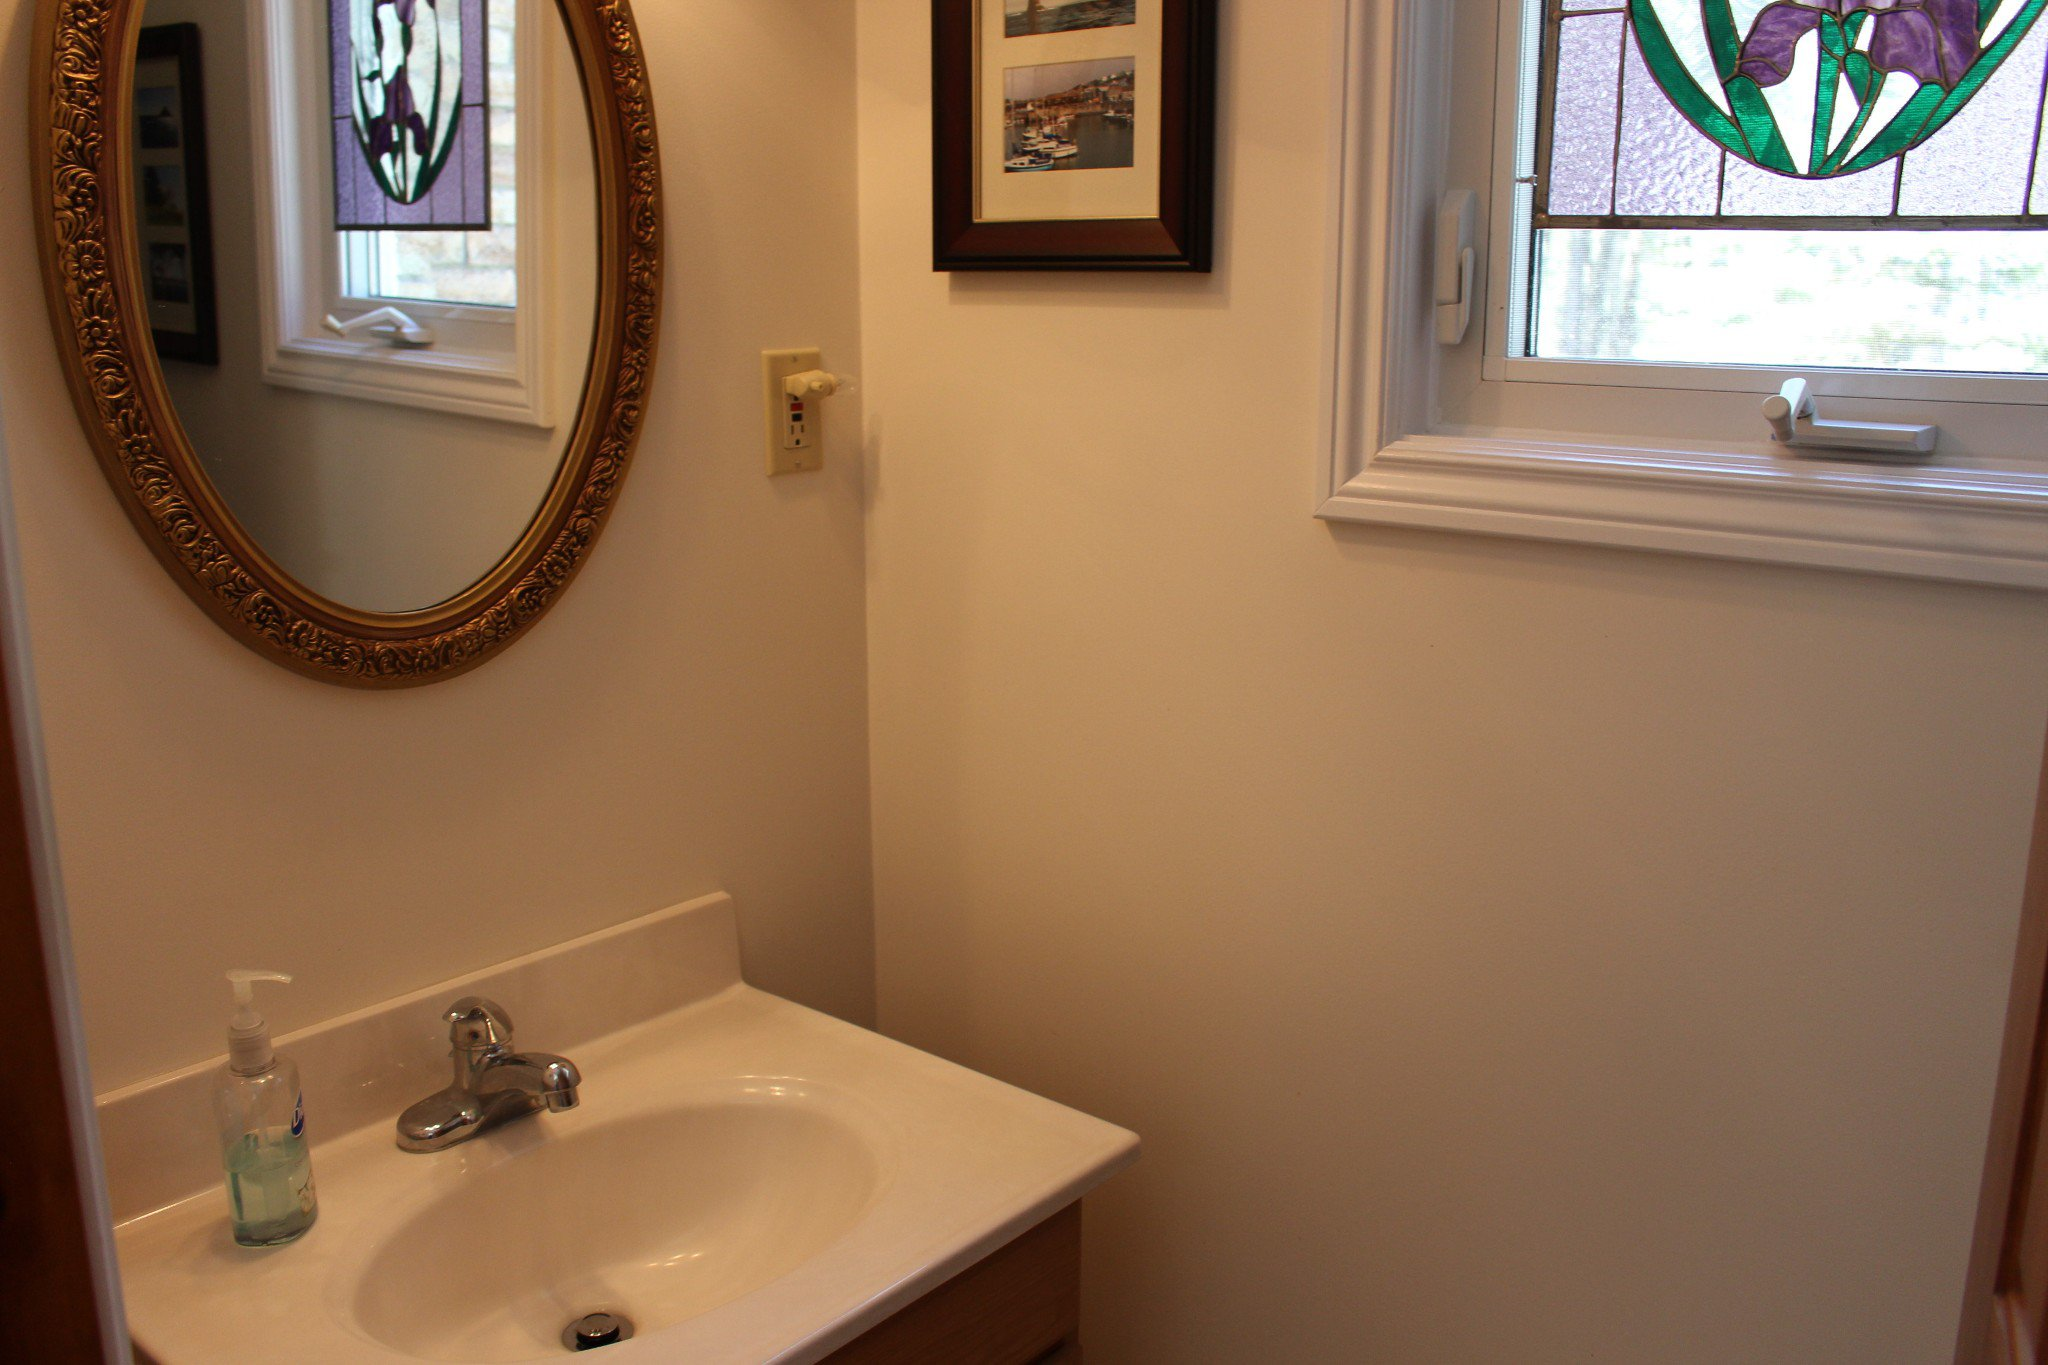 Photo 17: Photos: 5144 Oak Hills Road in Bewdley: Residential Detached for sale : MLS®# 125303